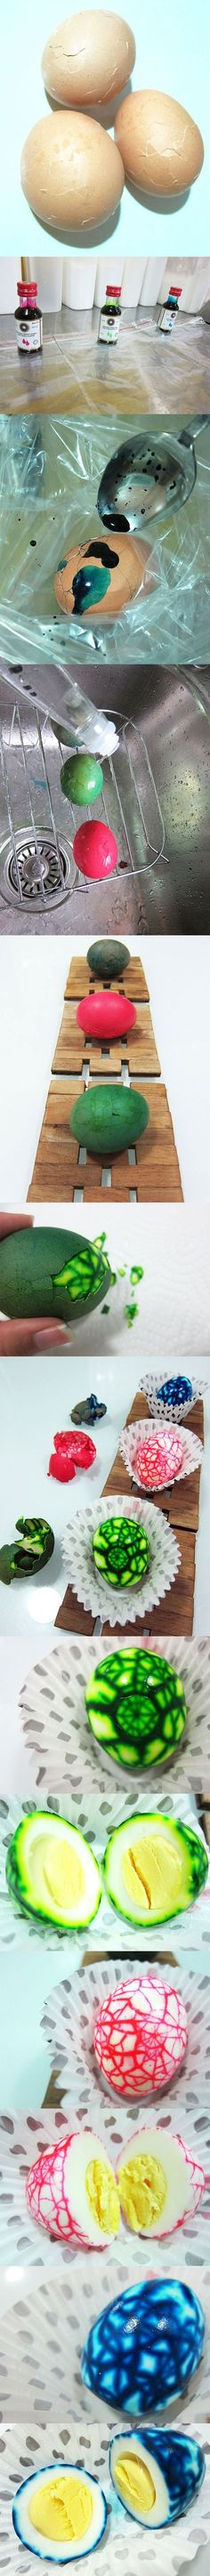 Marbled Easter Eggs-gonna use these as dino eggs